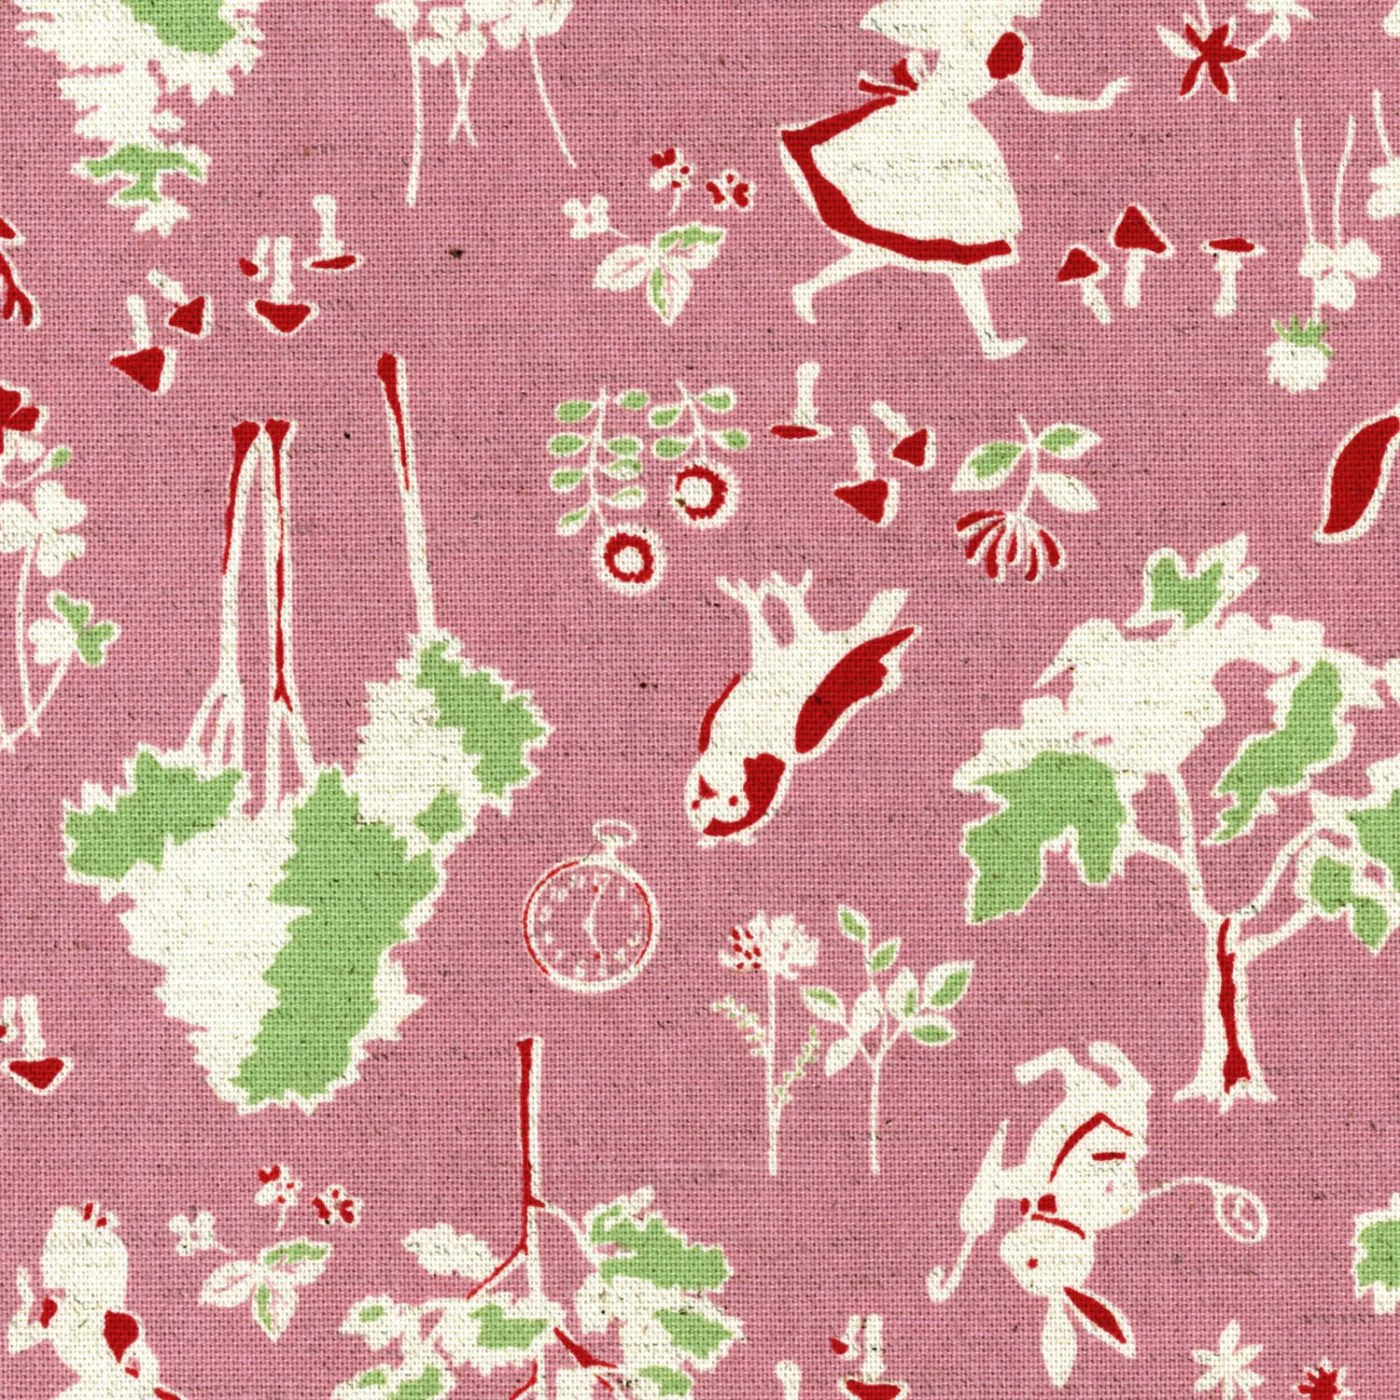 Interesting Deer Rabits Owls Wonderland Fabric Pink Fabric Spindleandrose This Canvas Fabric From Art Alice Alice Explores Wonderland Squirrels houzz-02 Alice In Wonderland Fabric